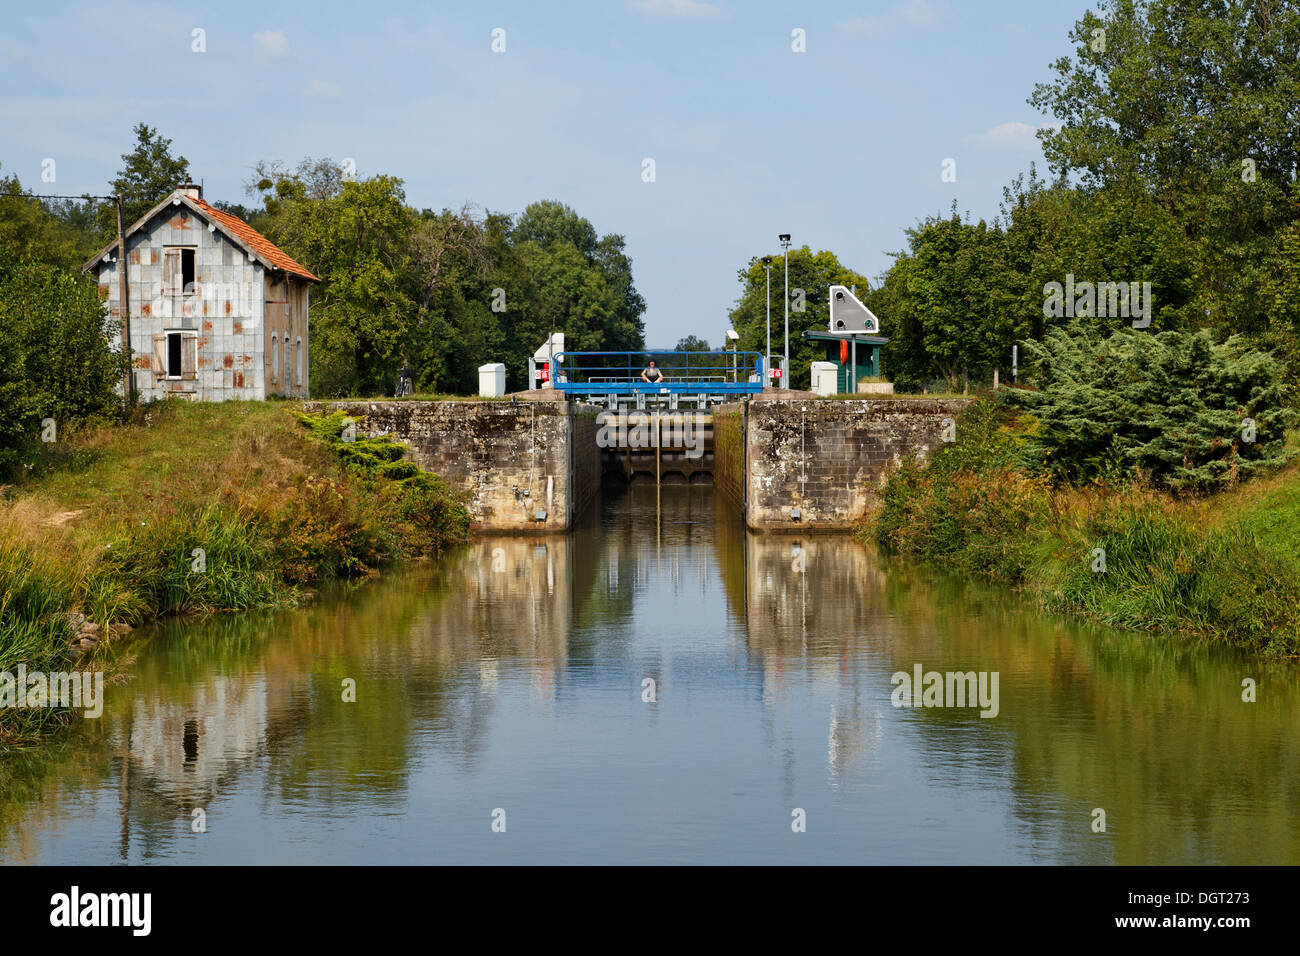 Abandoned lock keeper's house at the now automated lock, Canal des Vosges, formerly Canal de l'Est, Corre, Vesoul, Haute-Saône - Stock Image